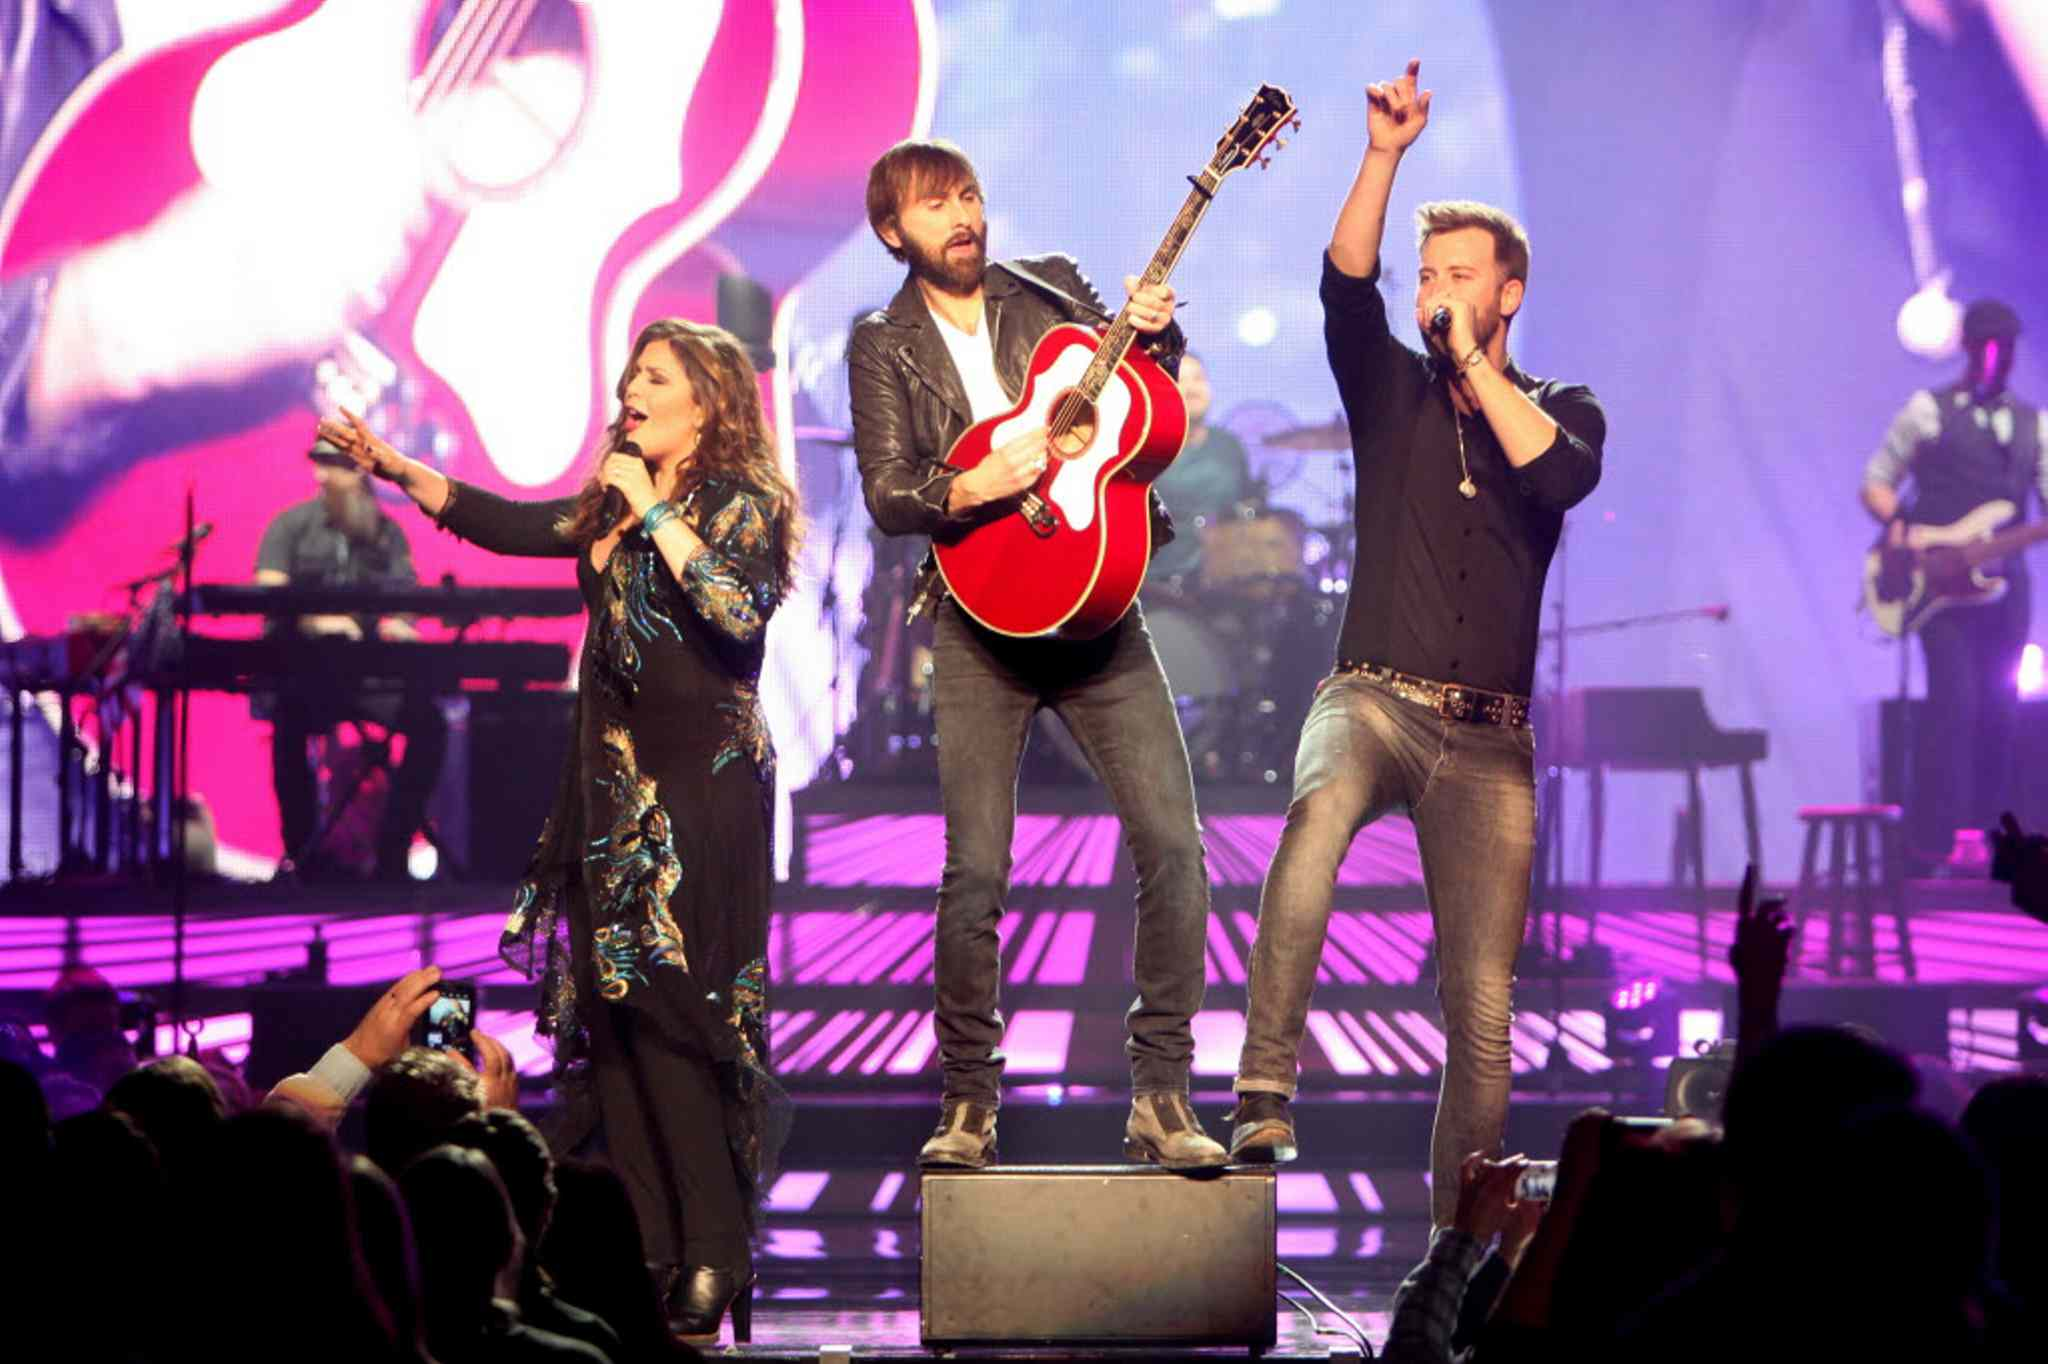 The pop-country trio croons to the crowd at the MTS Centre.